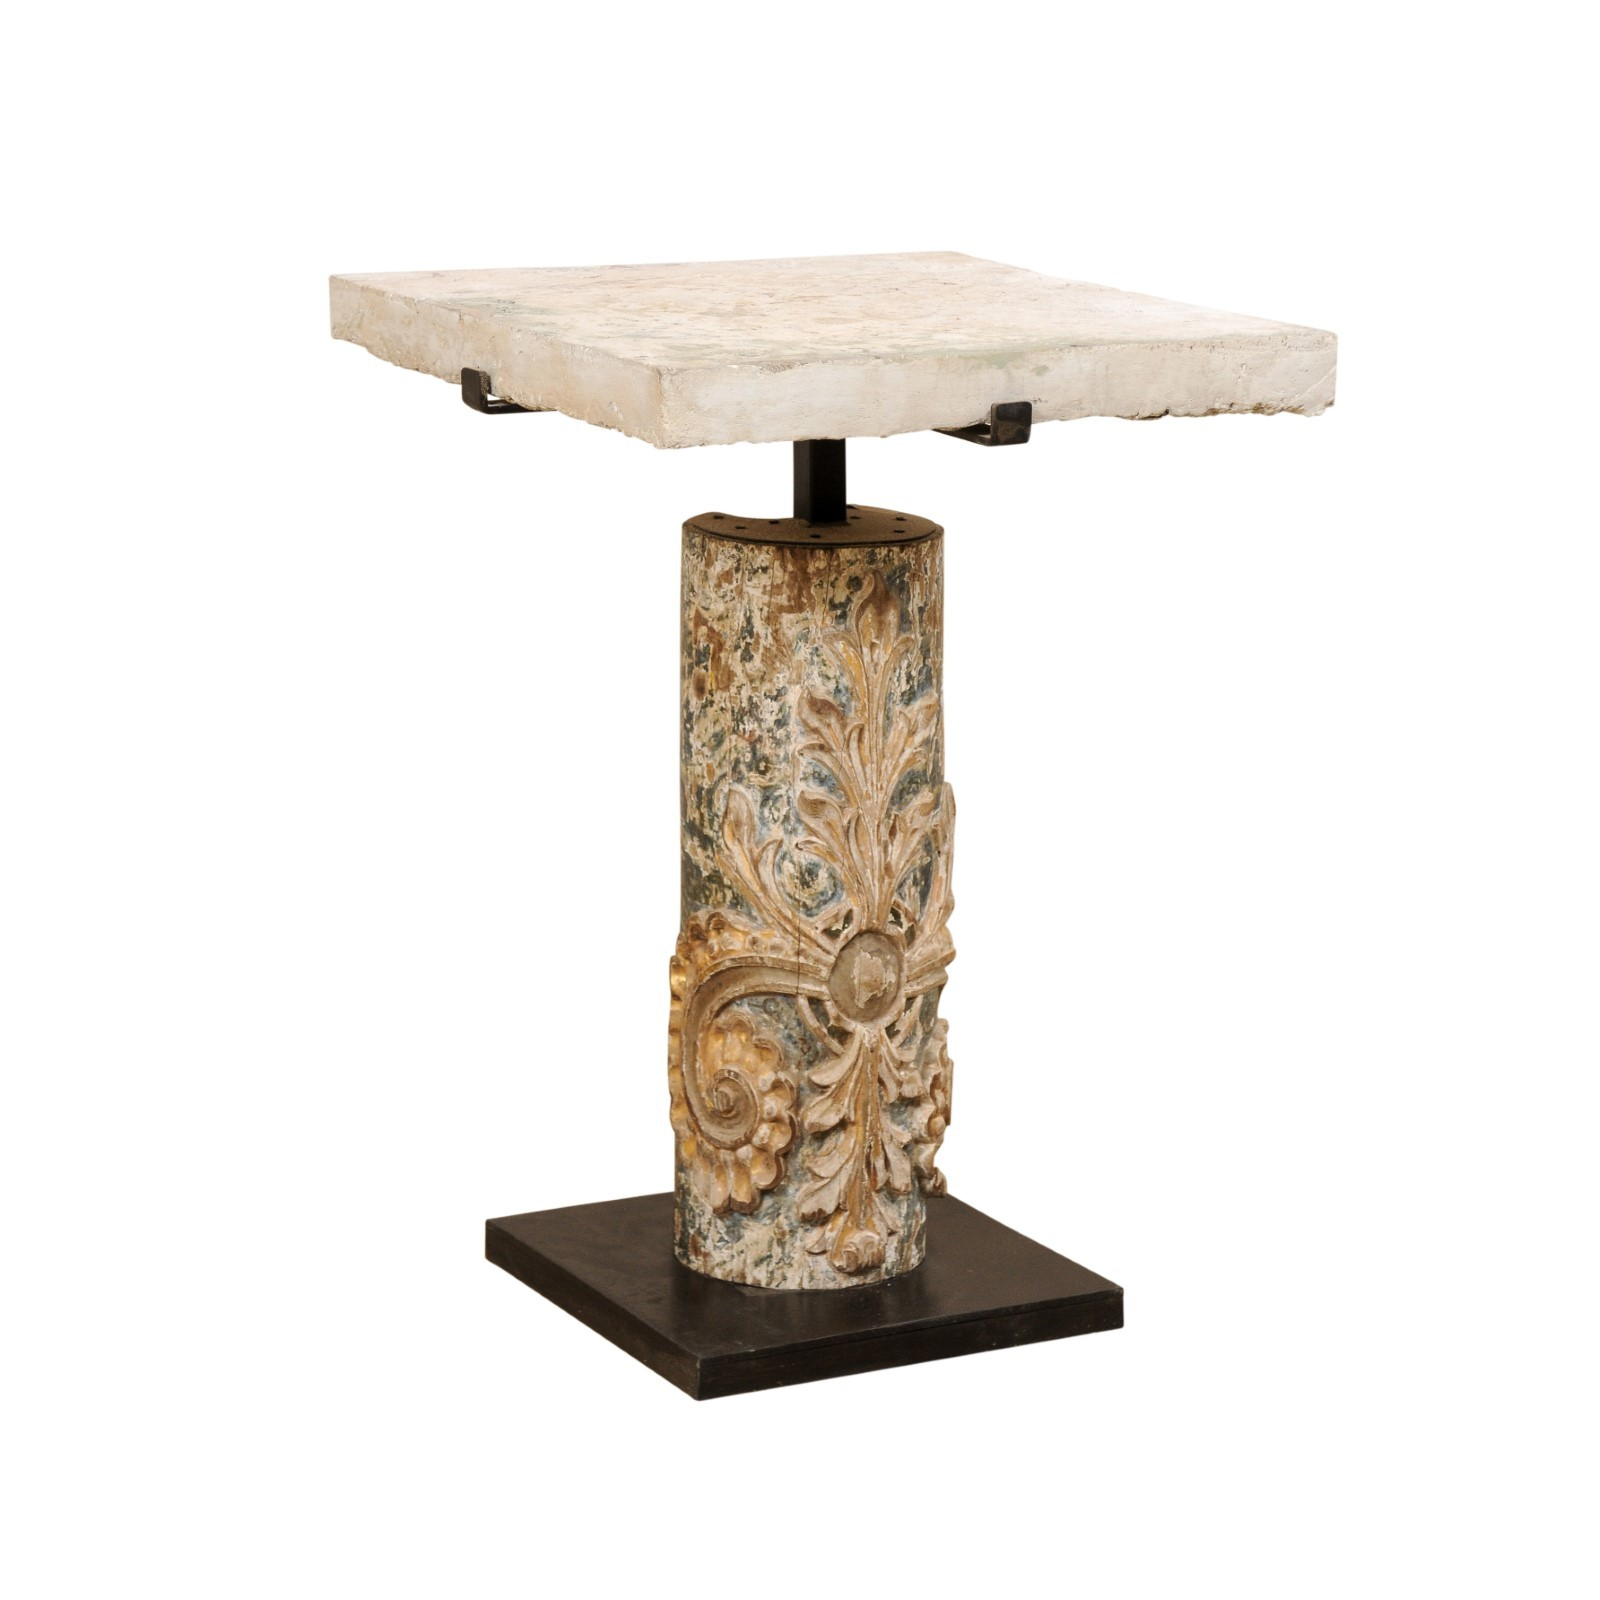 18th C. Column & Fossilized Coral Top Table